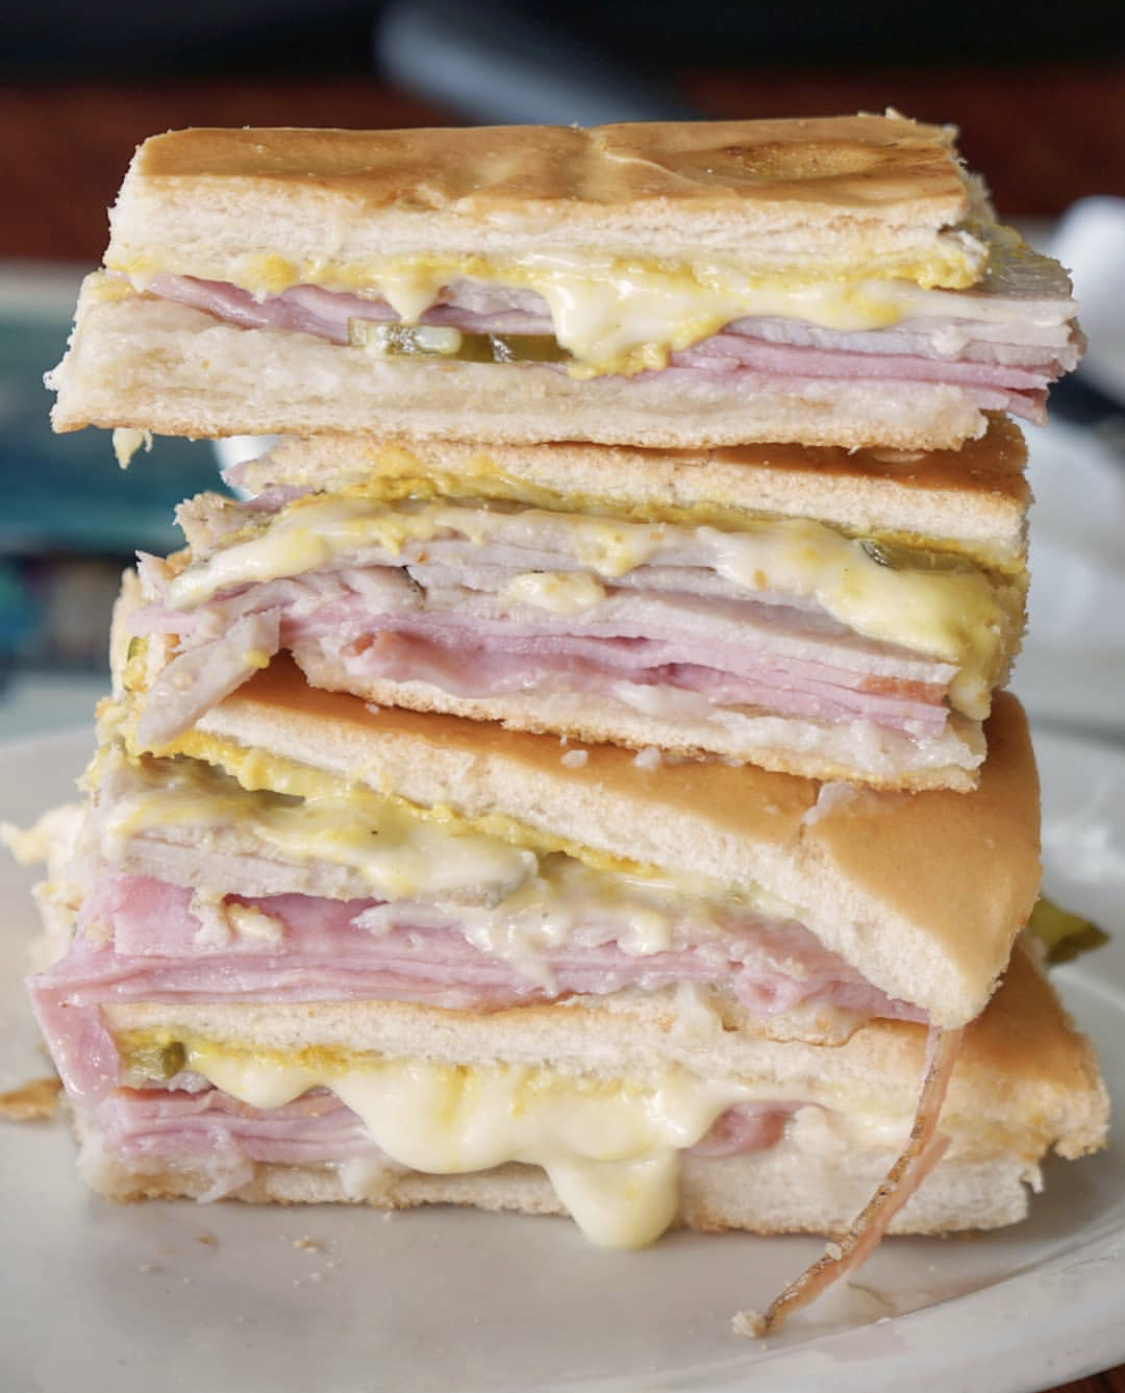 South Florida's 11 Best Cuban-Style Sandwiches